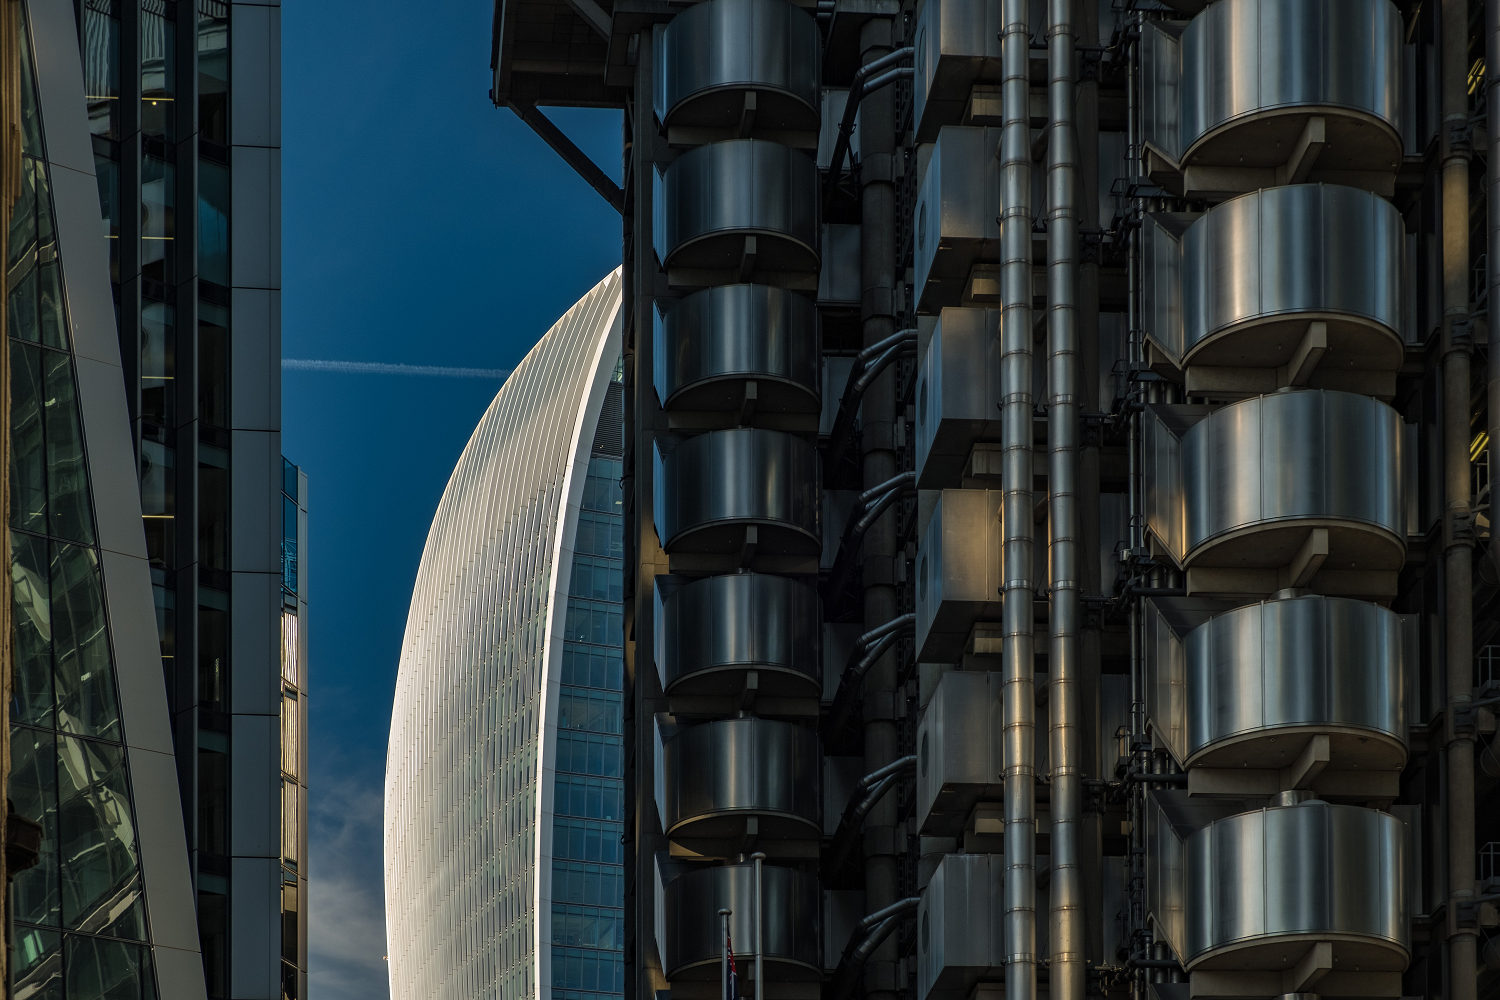 The Lloyds Building With Fenchurch Street Behind